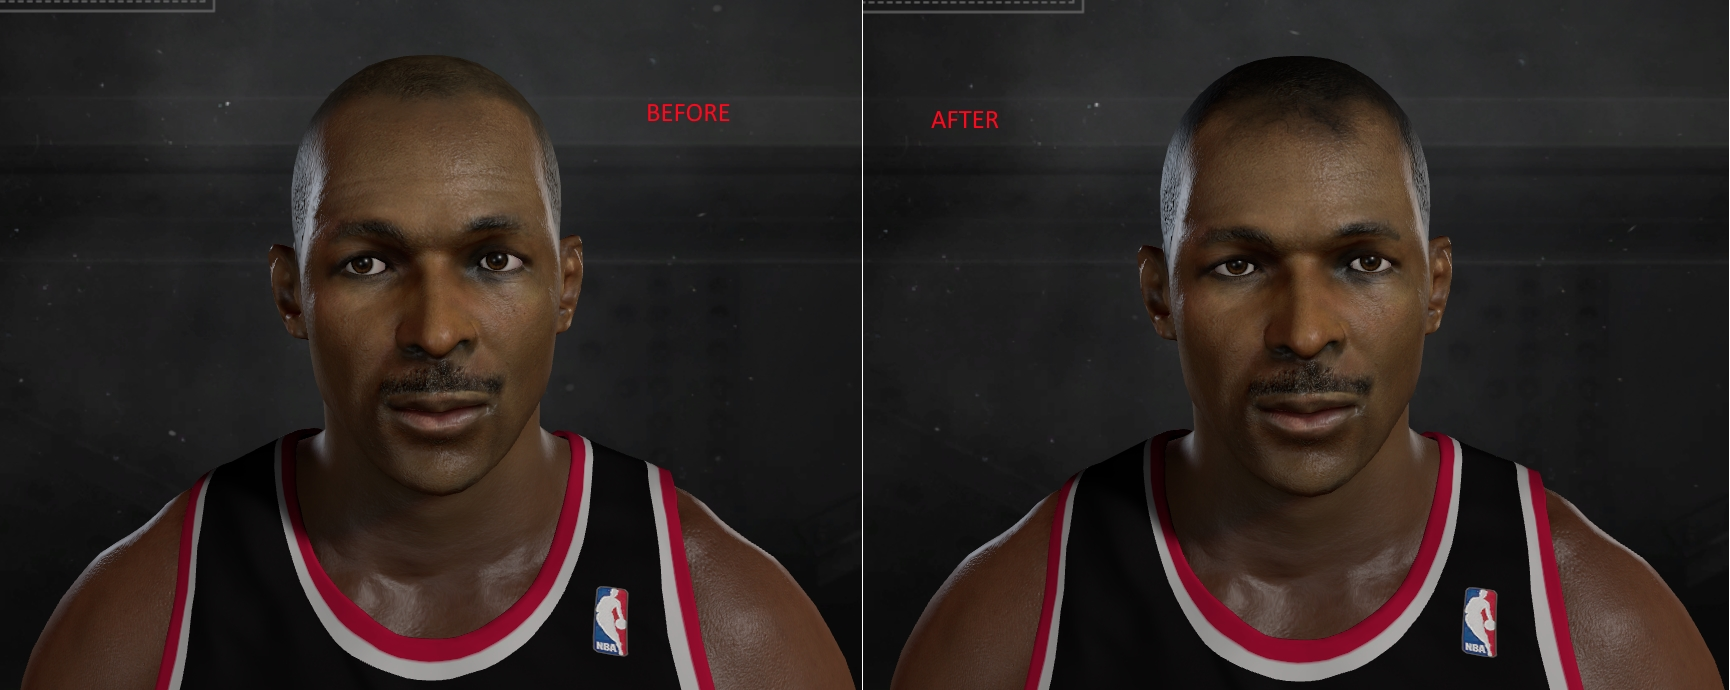 NLSC Forum • Downloads Younger Clyde Drexler Face with Hair